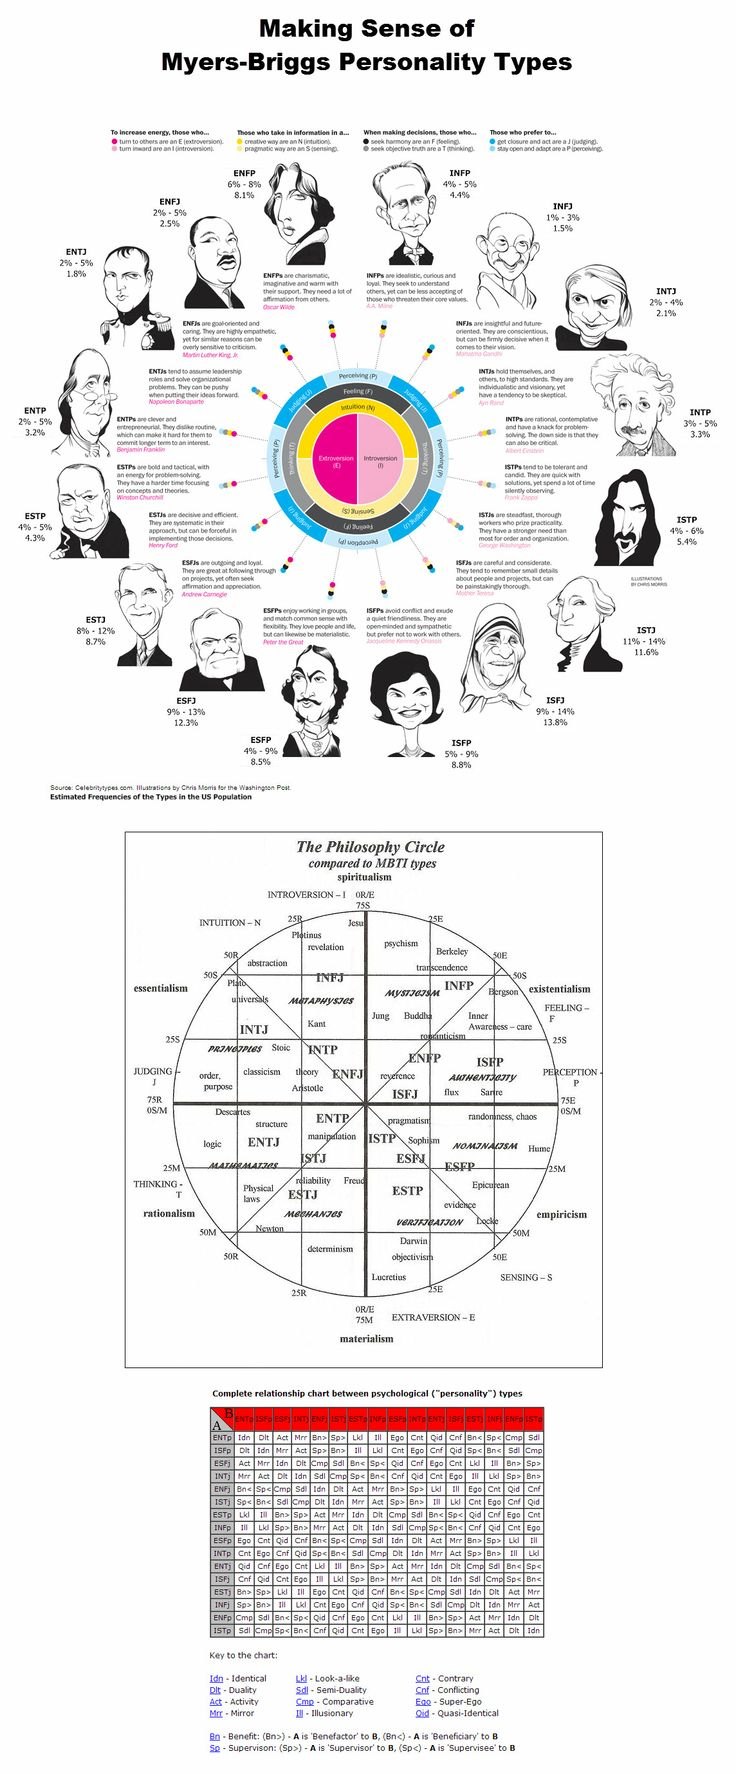 Pastiche of charts providing context for Meyers-Briggs personality types.  For a free Myers-Briggs assessment see: http://www.humanmetrics.com/cgi-win/JTypes2.asp